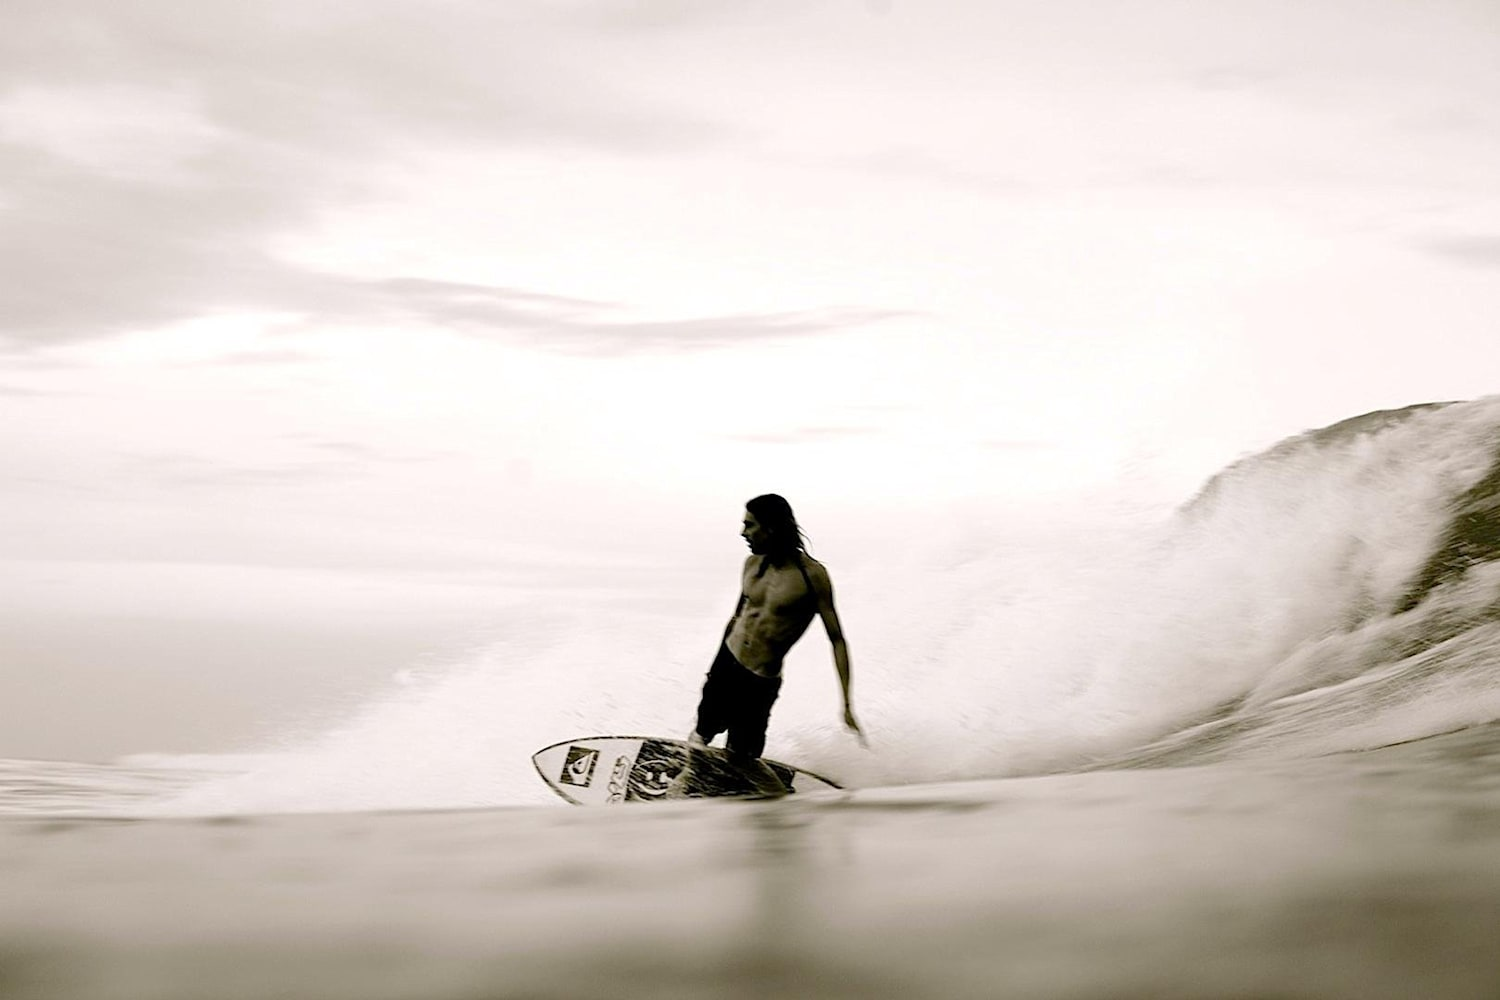 The Pipeline Surf Inspired Collection Rule Number Five